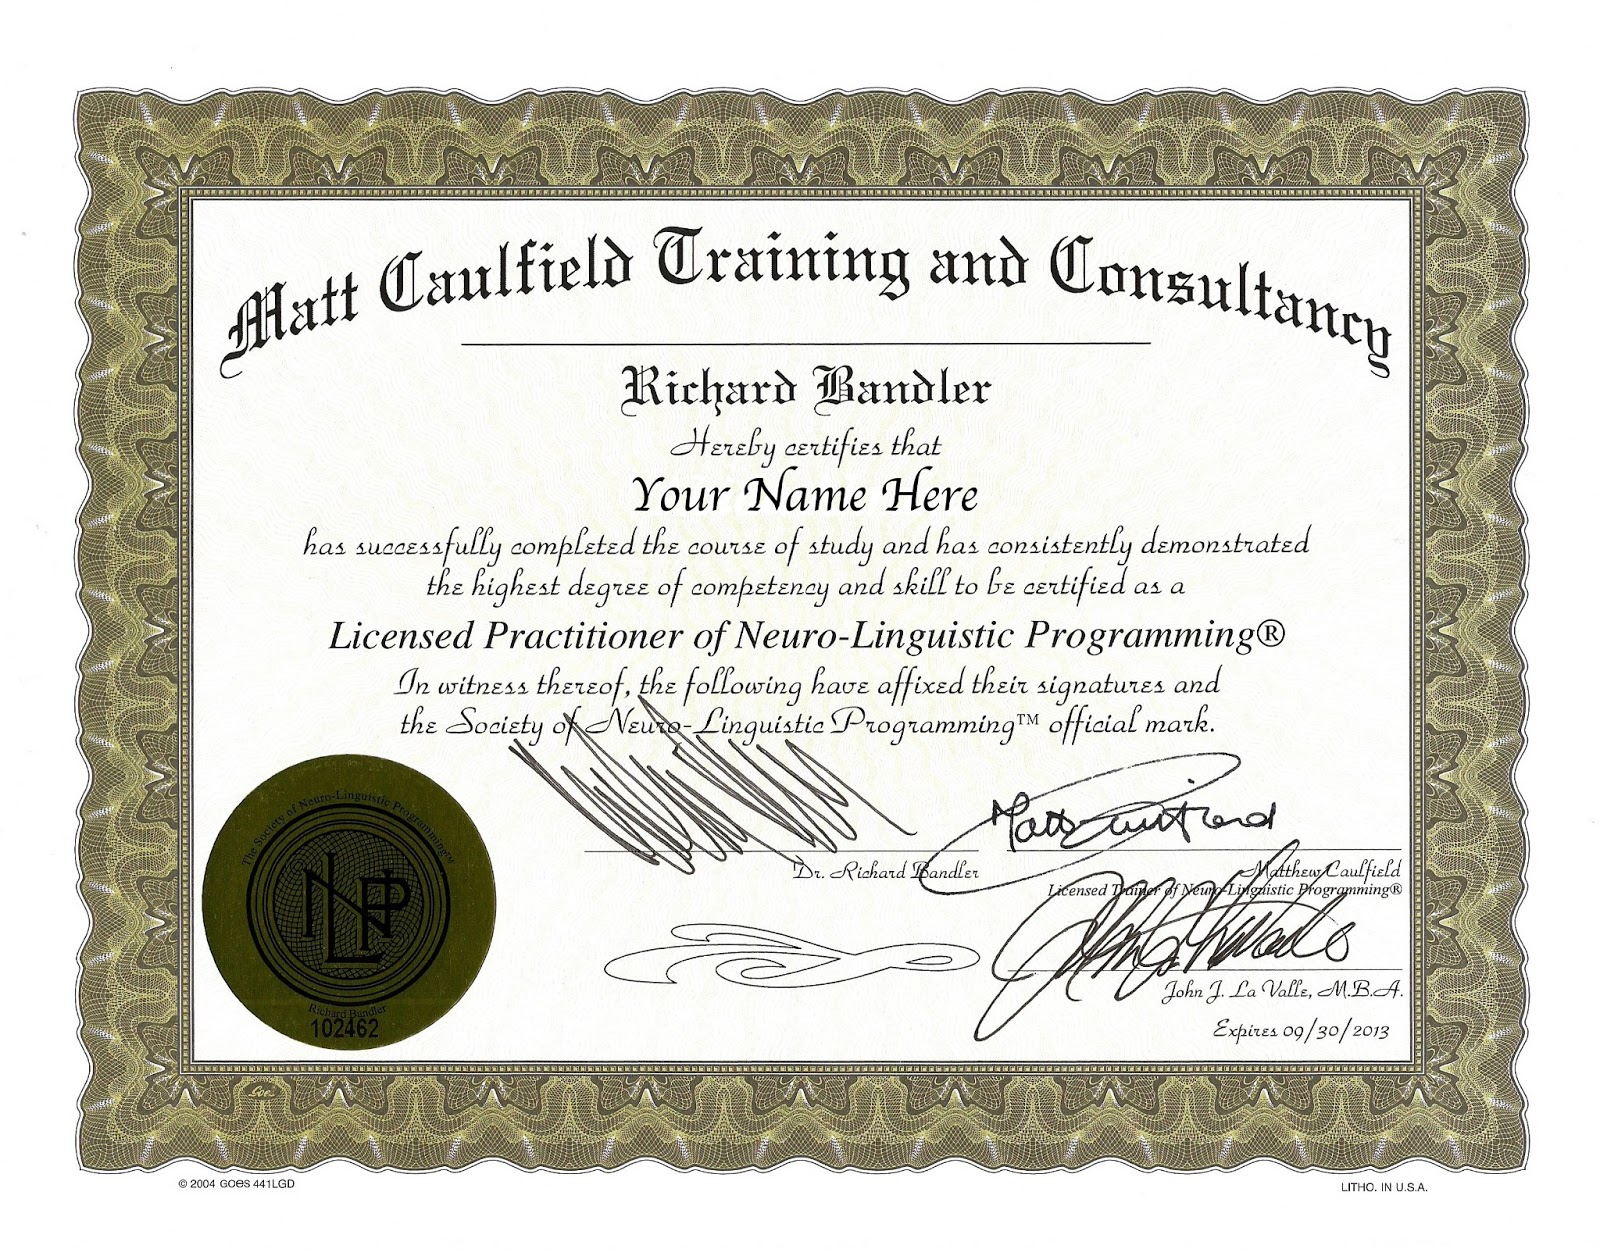 Nlp debunked nlp practitioner training debunked what value is there in holding an nlp practitioner certificate there is no overall governing body to supervise the quality of any certification awarded xflitez Images